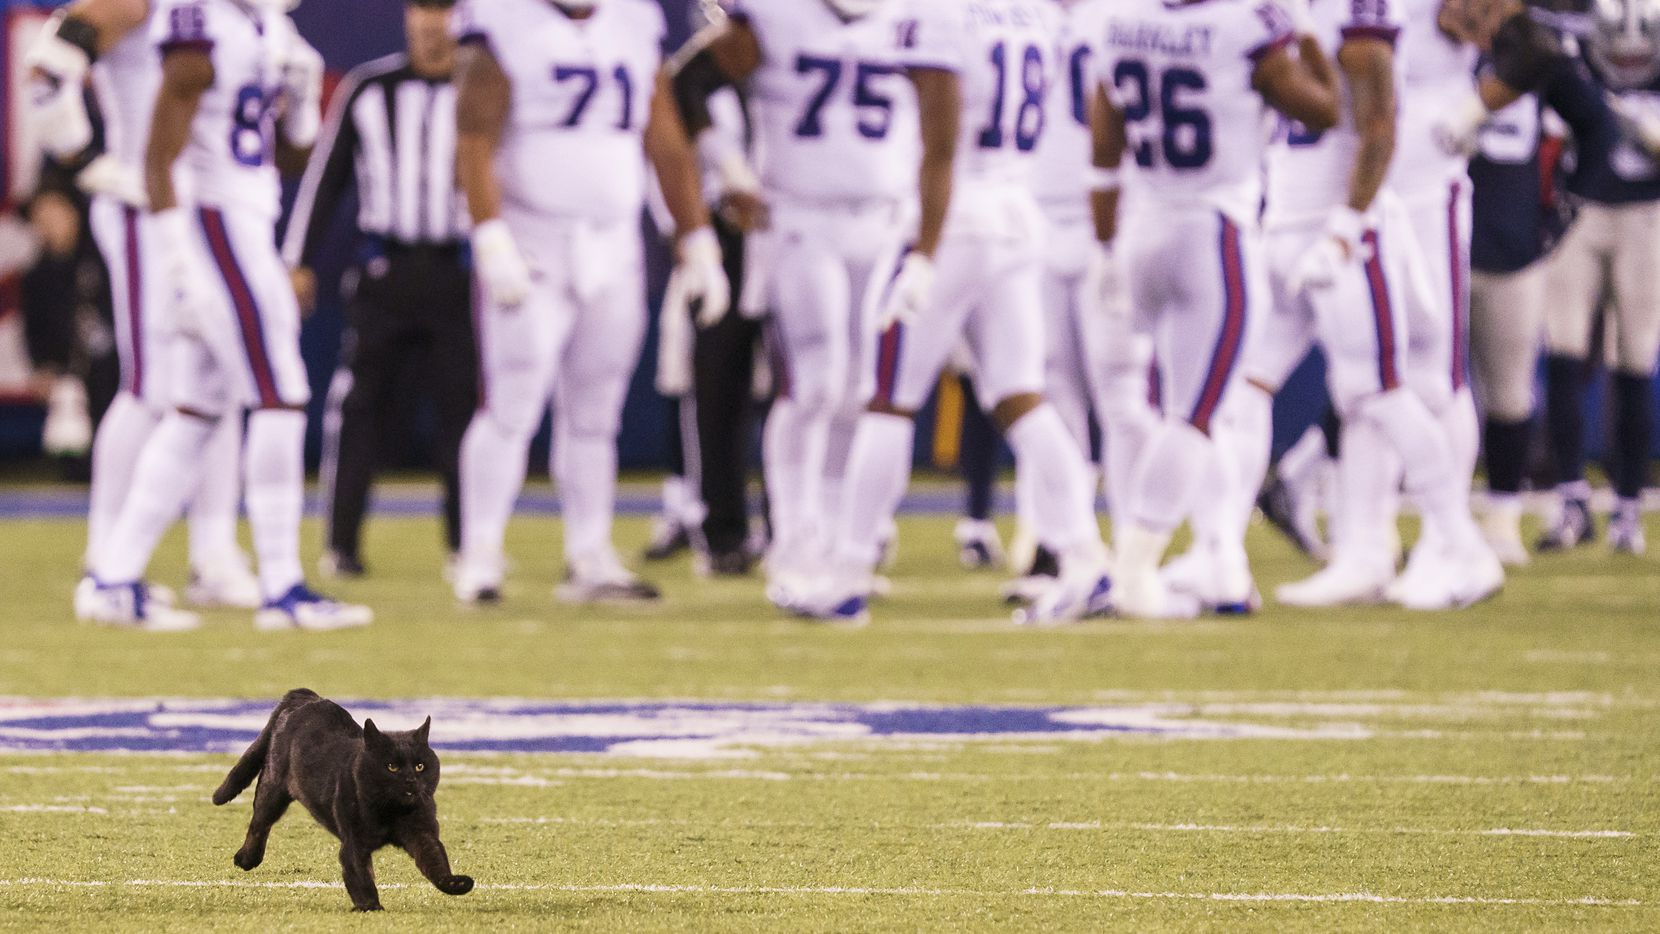 A black cat runs across the field during the second quarter of an NFL football game between the Dallas Cowboys and the New York Giants, Monday, Nov. 4, 2019, in East Rutherford, N.J.